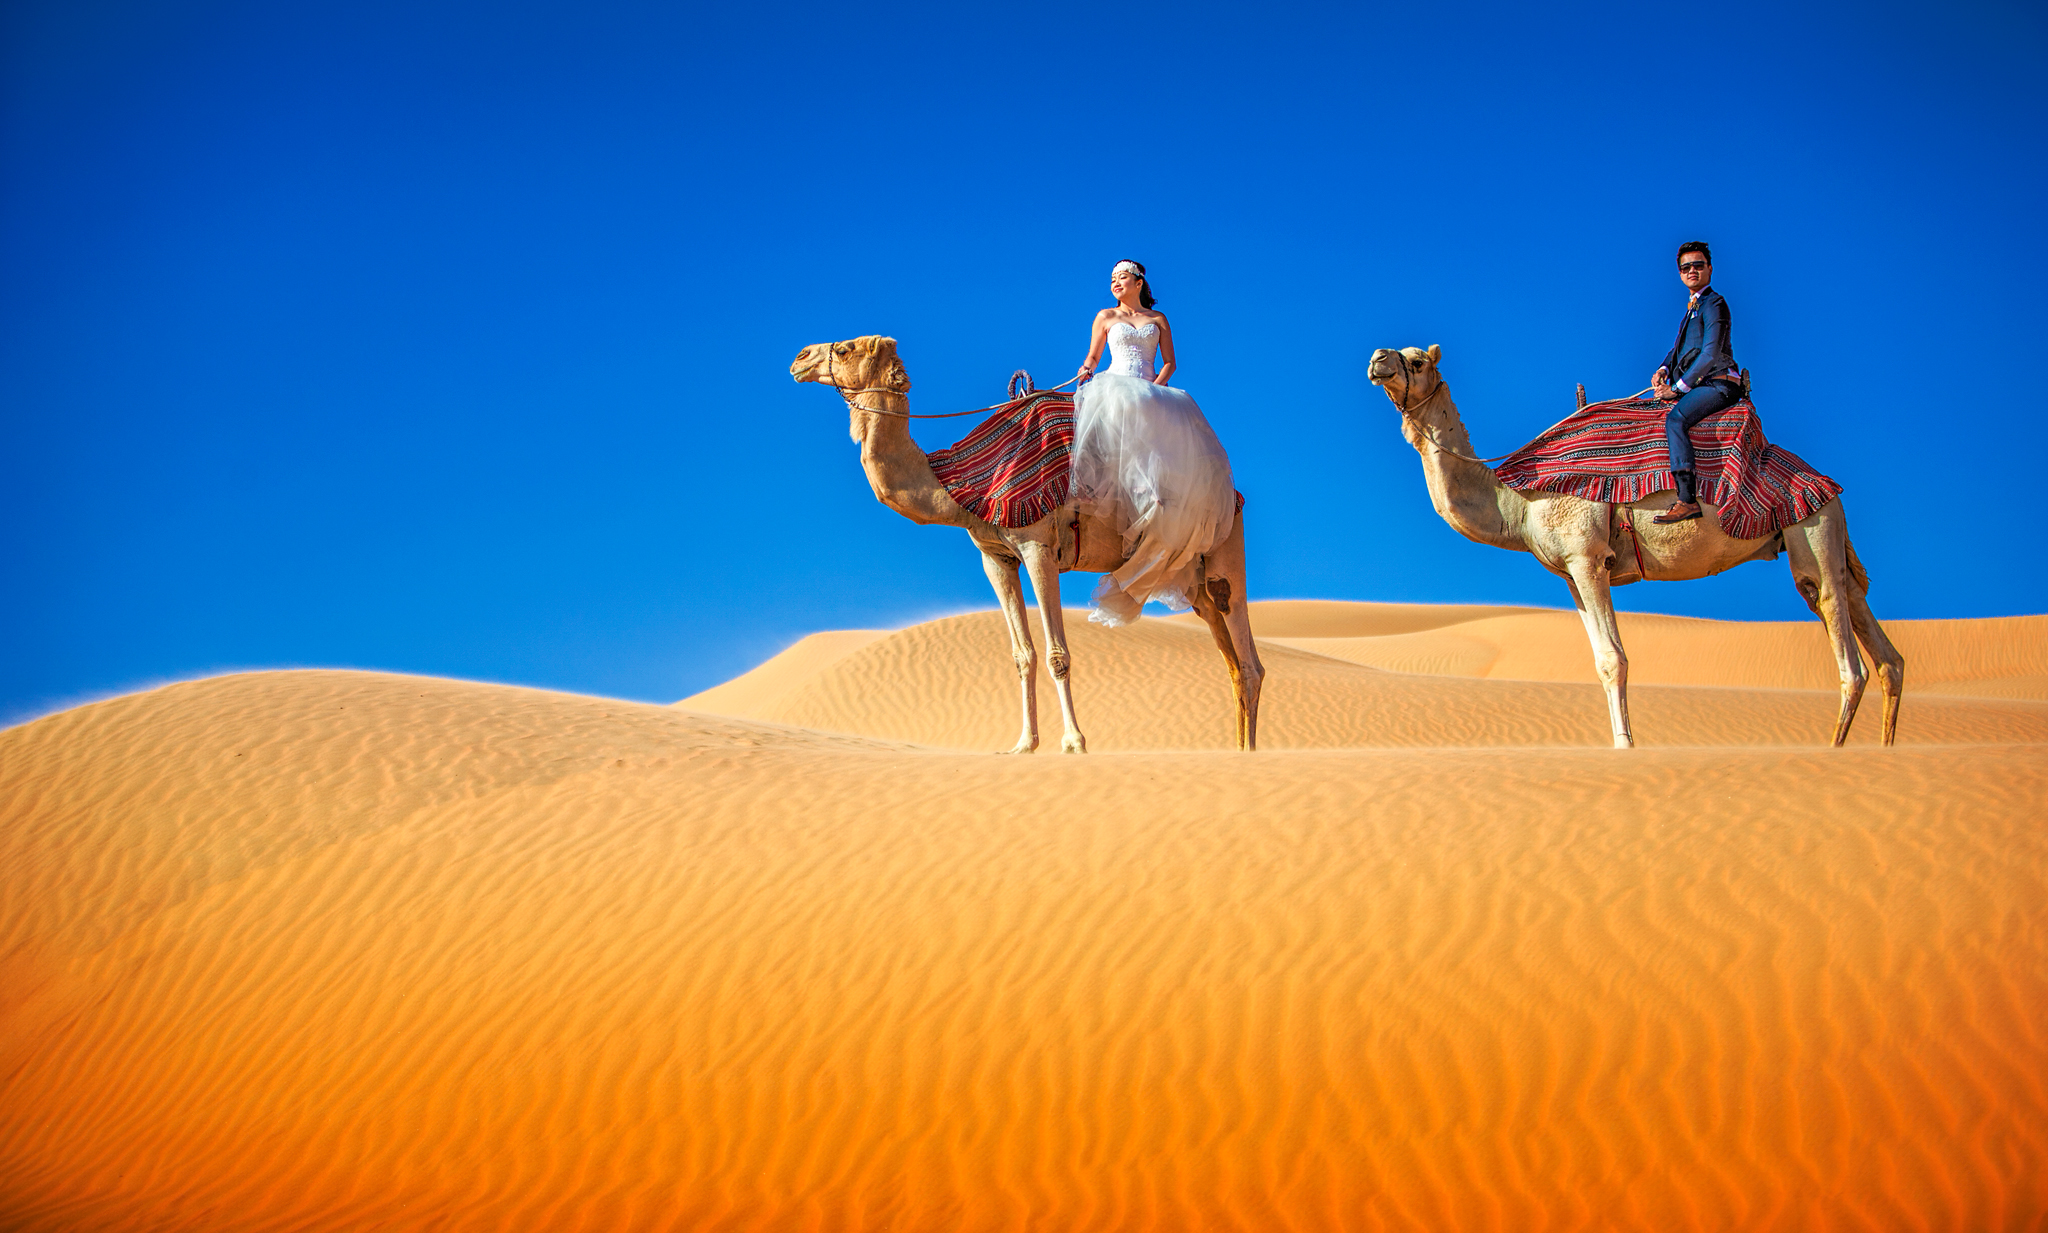 bride-groom-on-camels-photo-by-edwin-tan